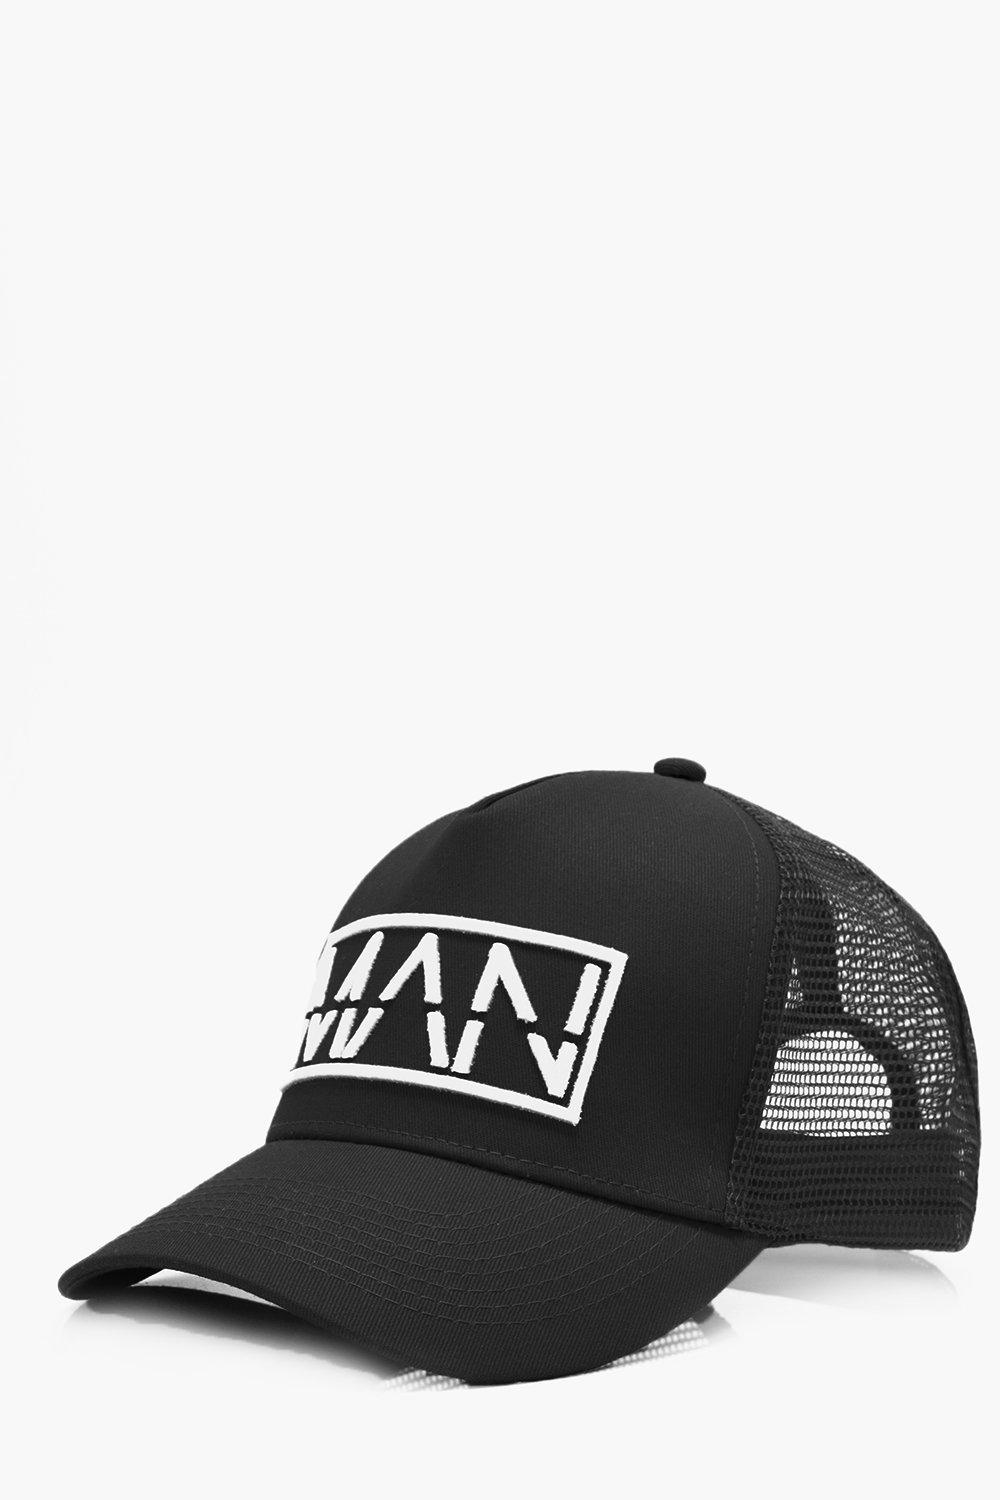 Contrast Embroidery Trucker Hat - black - MAN Cont